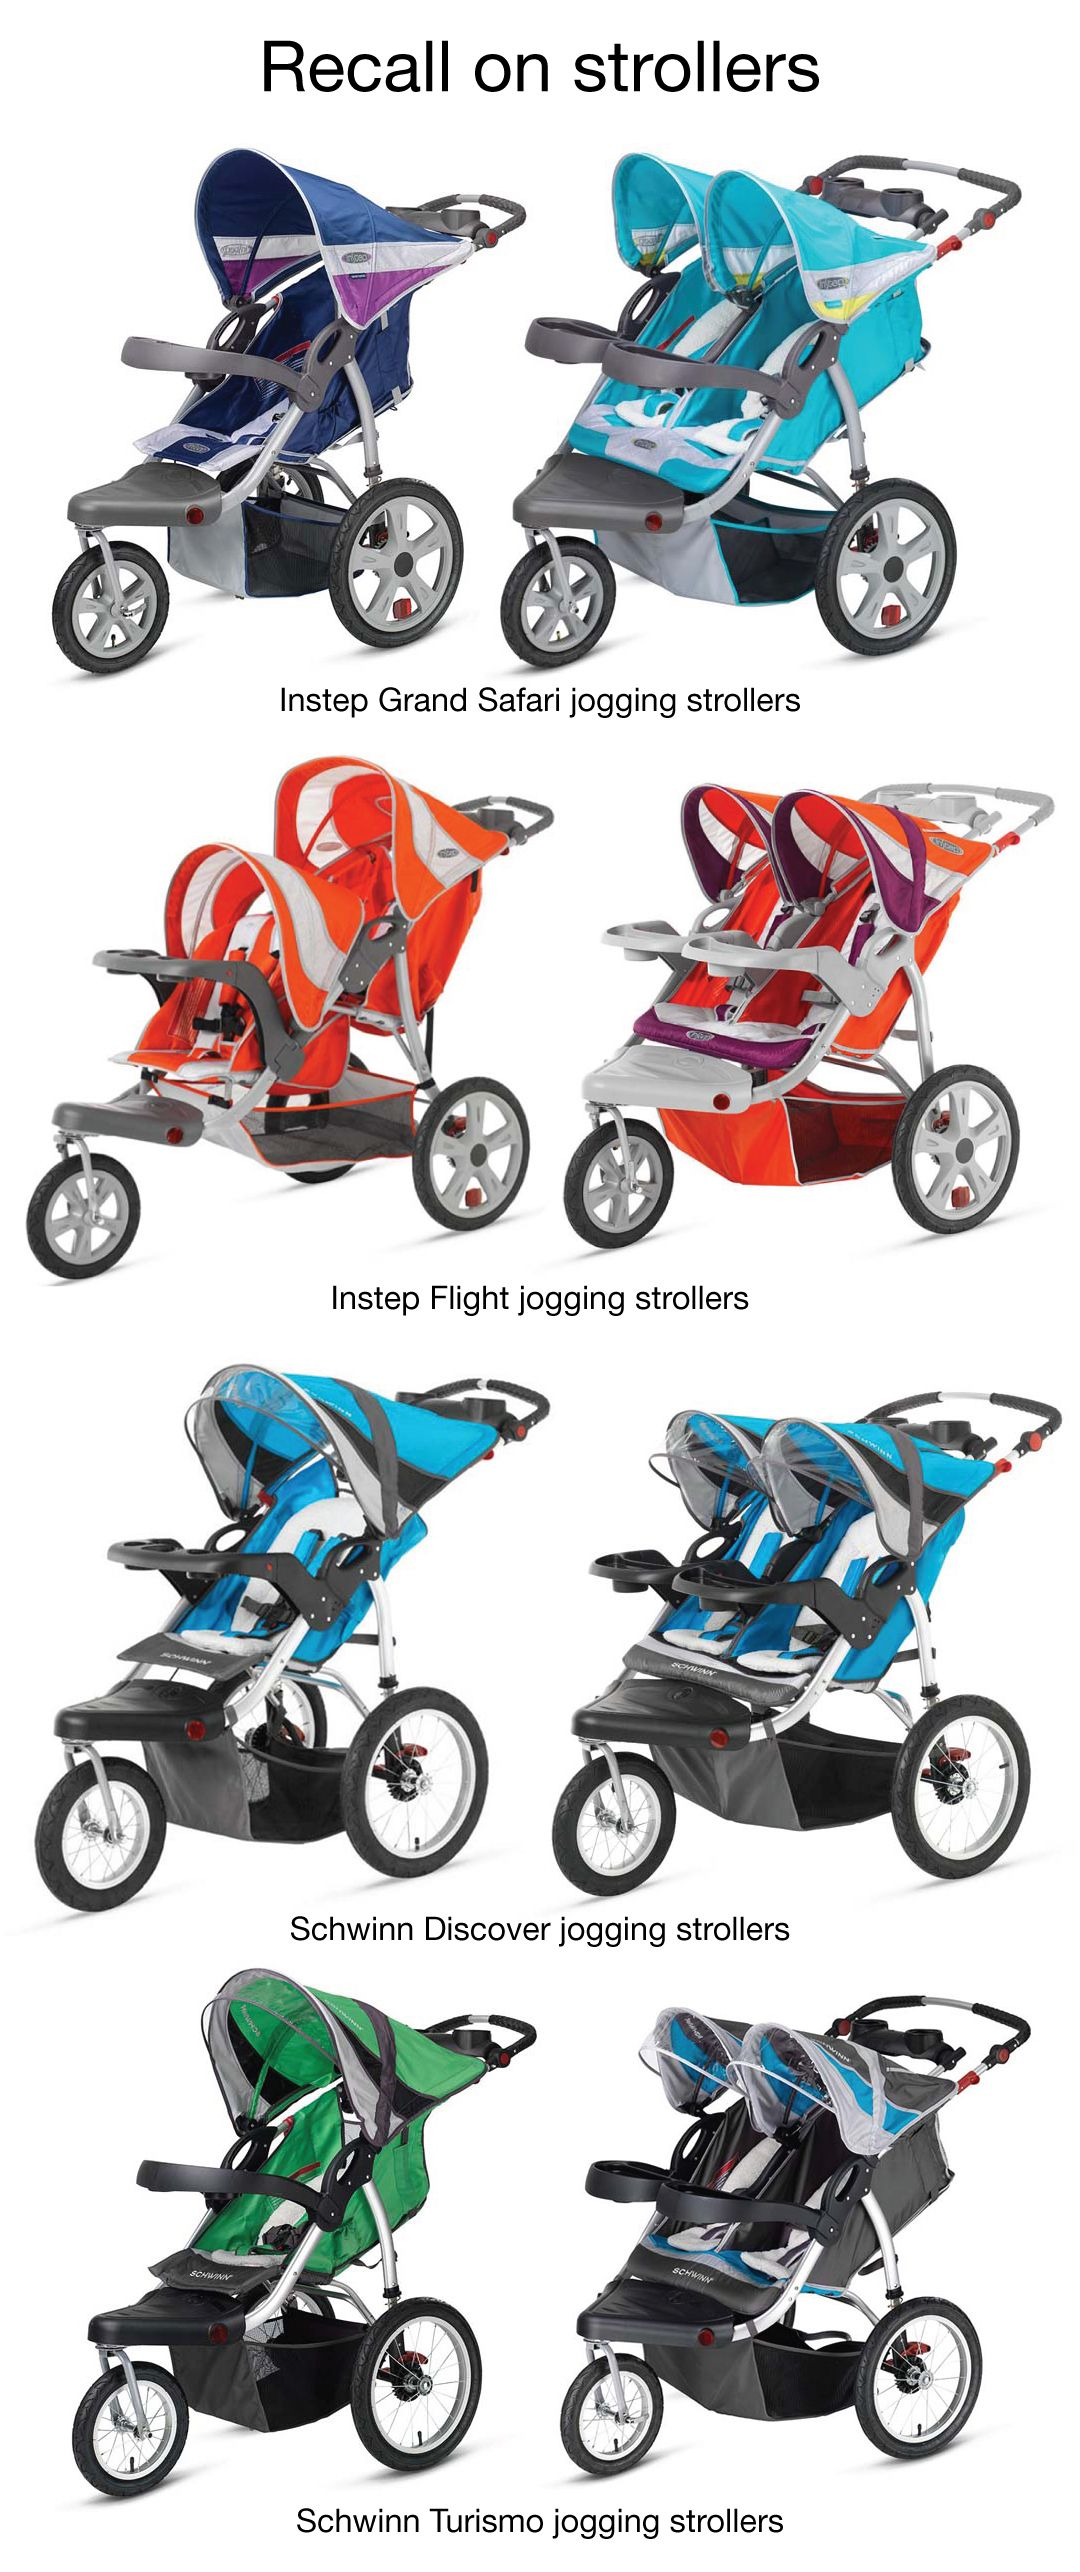 Pacific Cycle recalls 217,600 jogging strollers Pacific